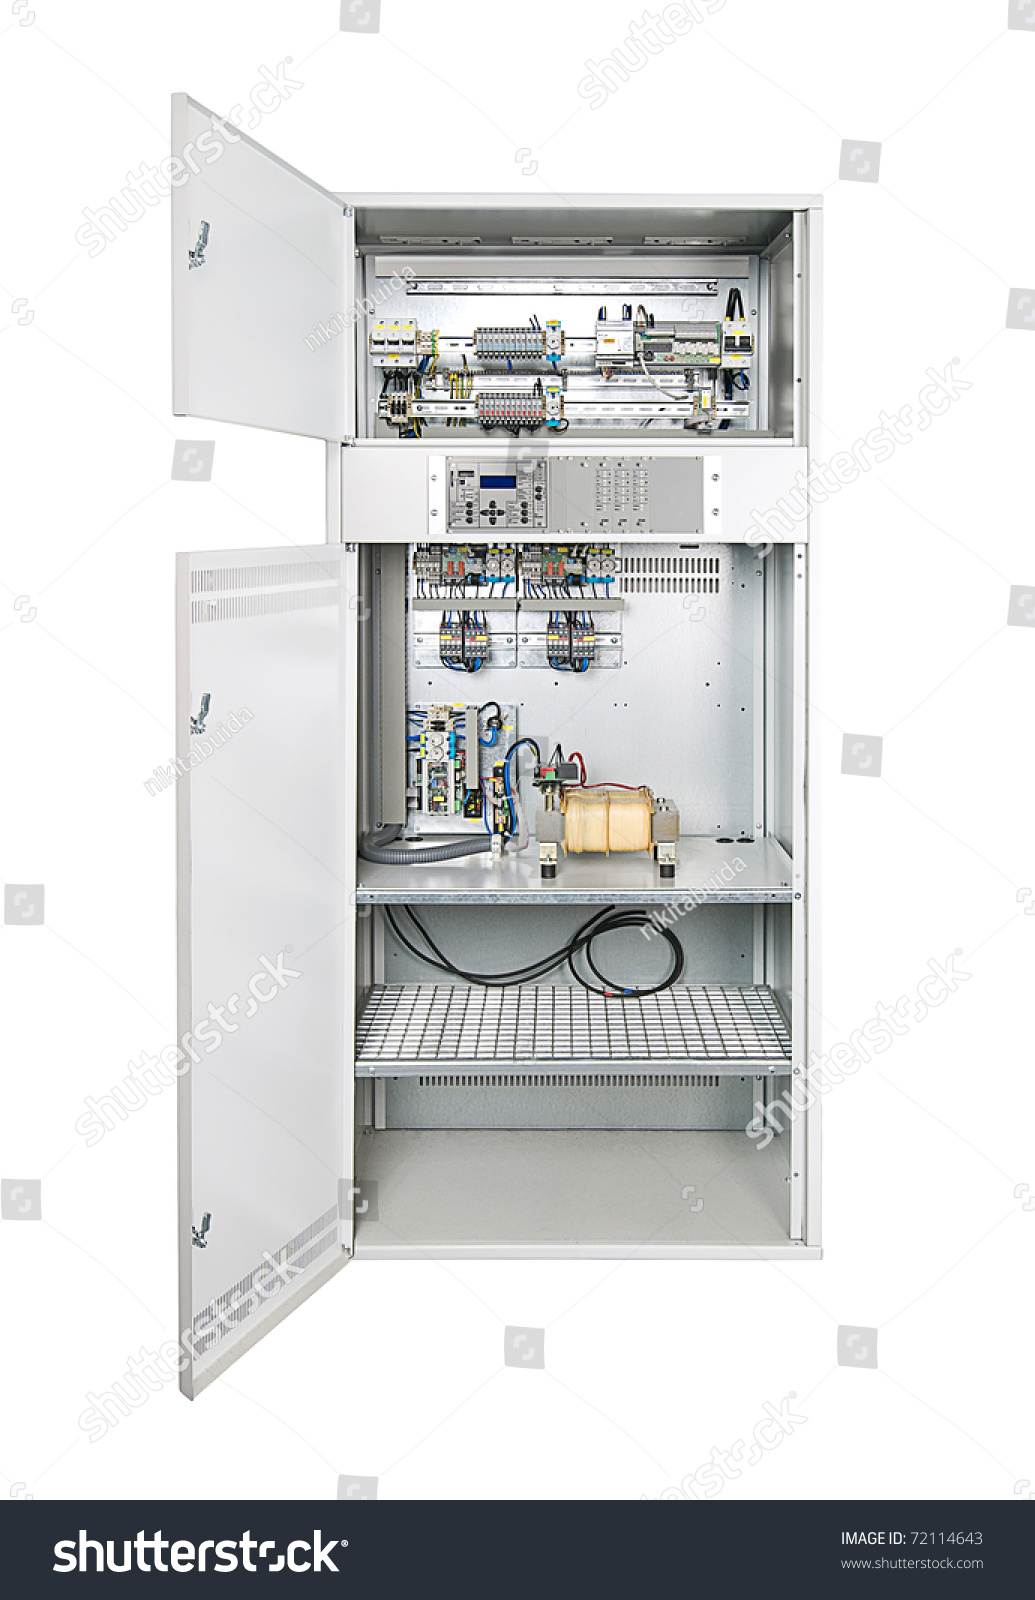 electrical enclosure door open could be stock photo (edit now